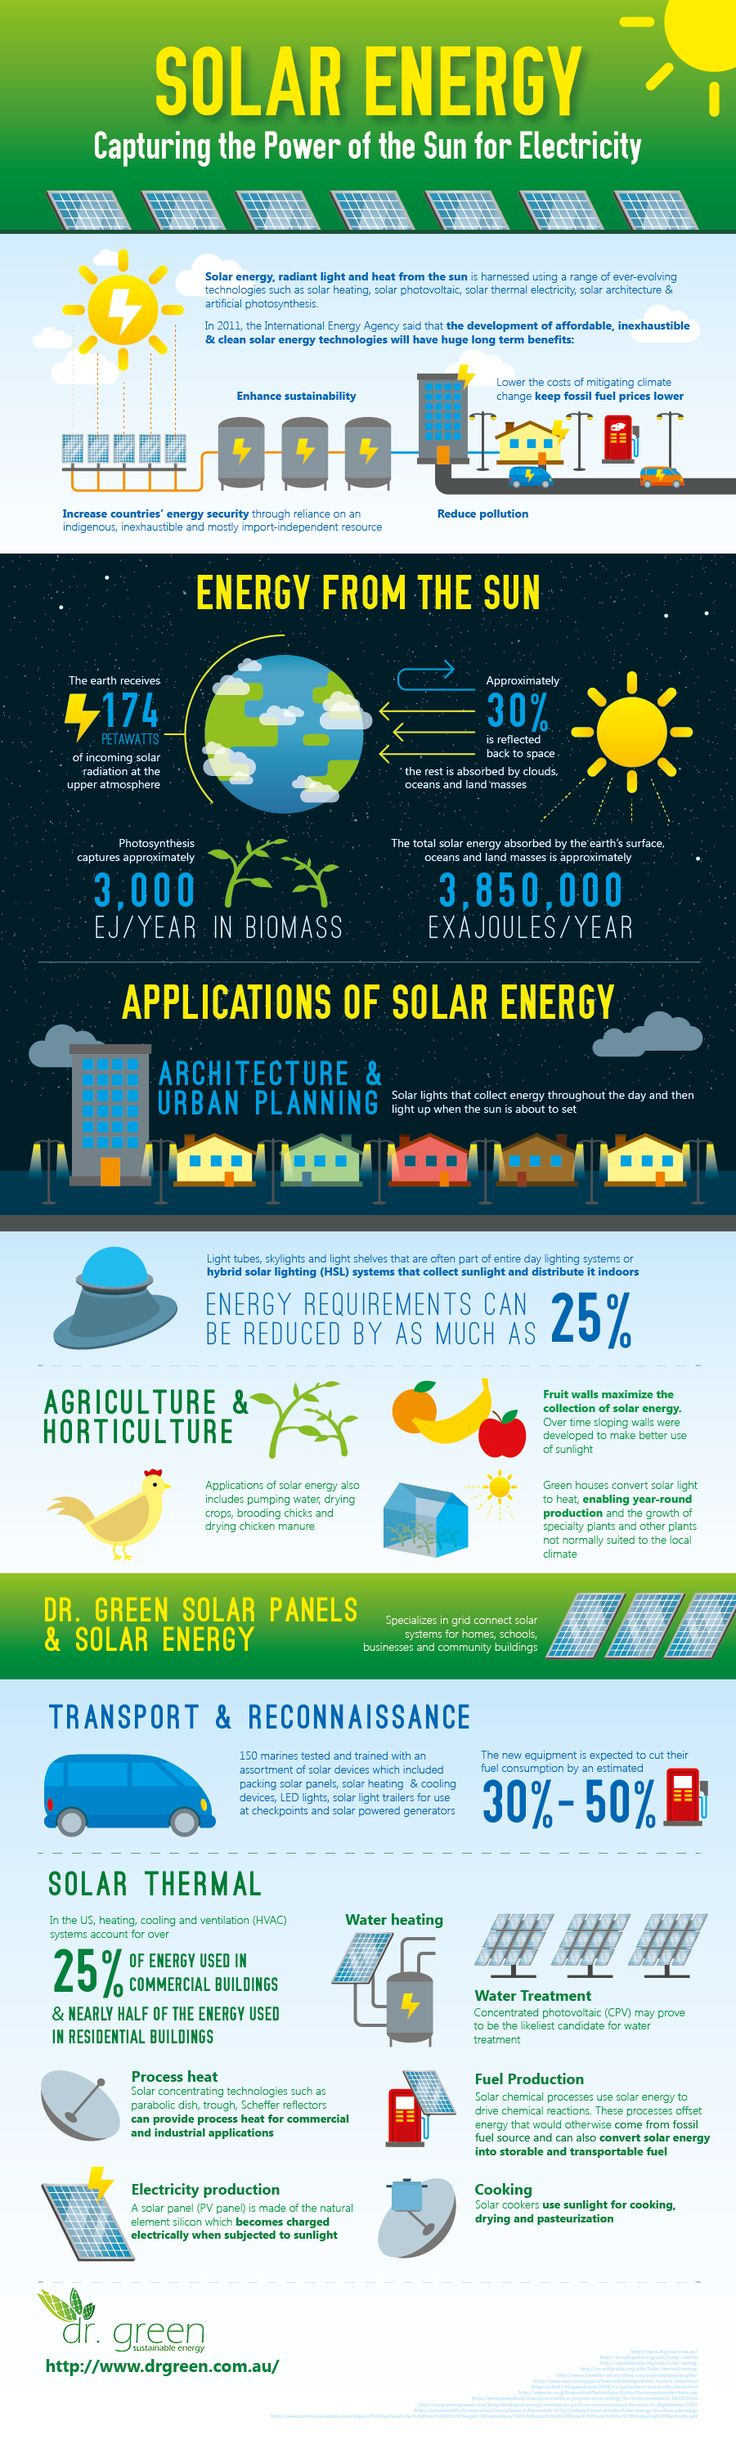 Solar Energy: Capturing The Power Of The Sun For Electricity  #solar #solarenergy #Infographic